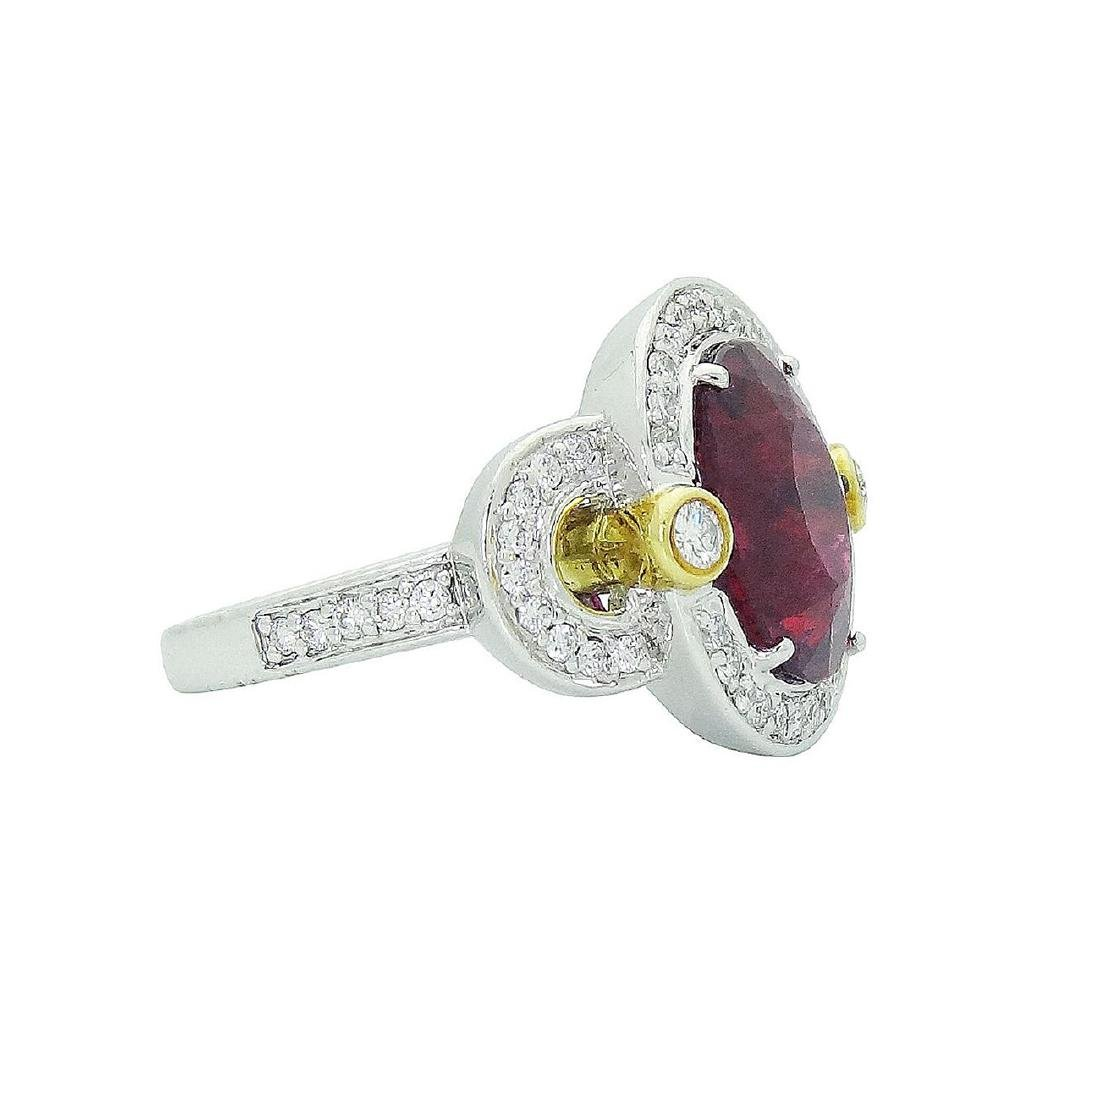 Spark 18K White Gold Diamond Tourmaline Ring Size 6.75 - 3